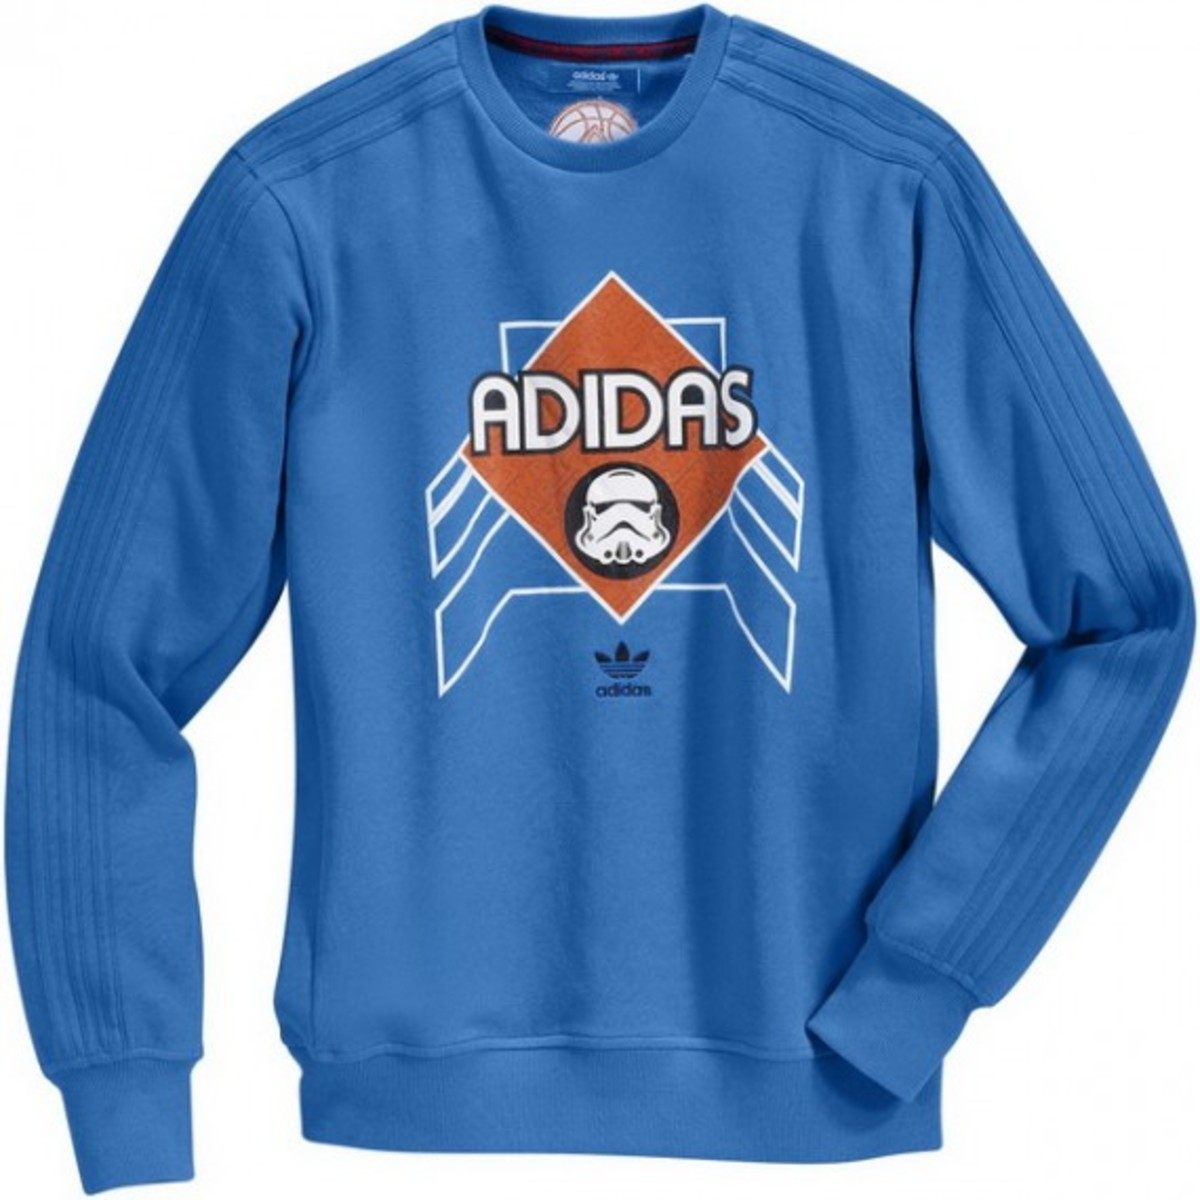 star-wars-adidas-originals-2011-apparel-18